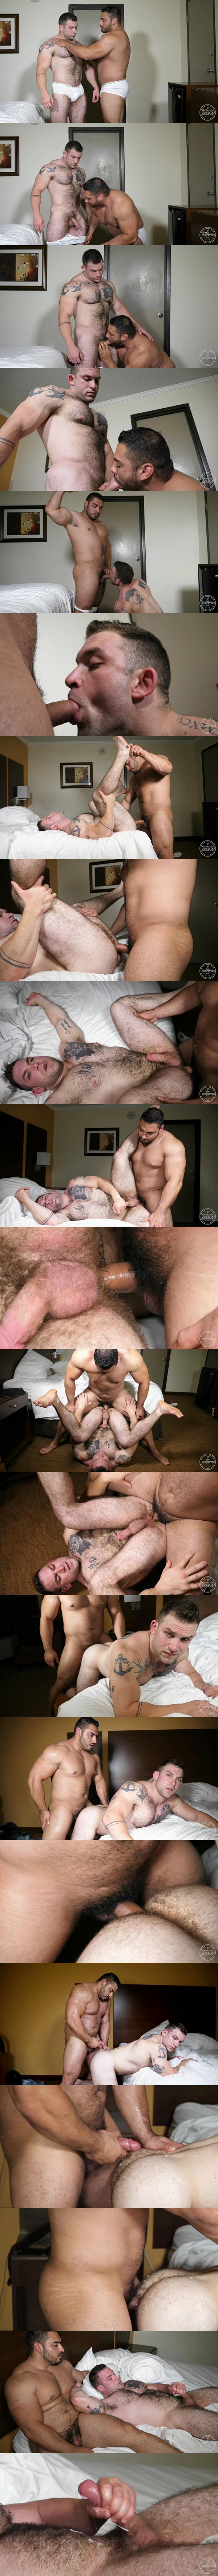 Jesse James fucks sexy hairy inked muscle hunk Jack's virgin ass in Popping Jack's Cherry at Theguysite 02